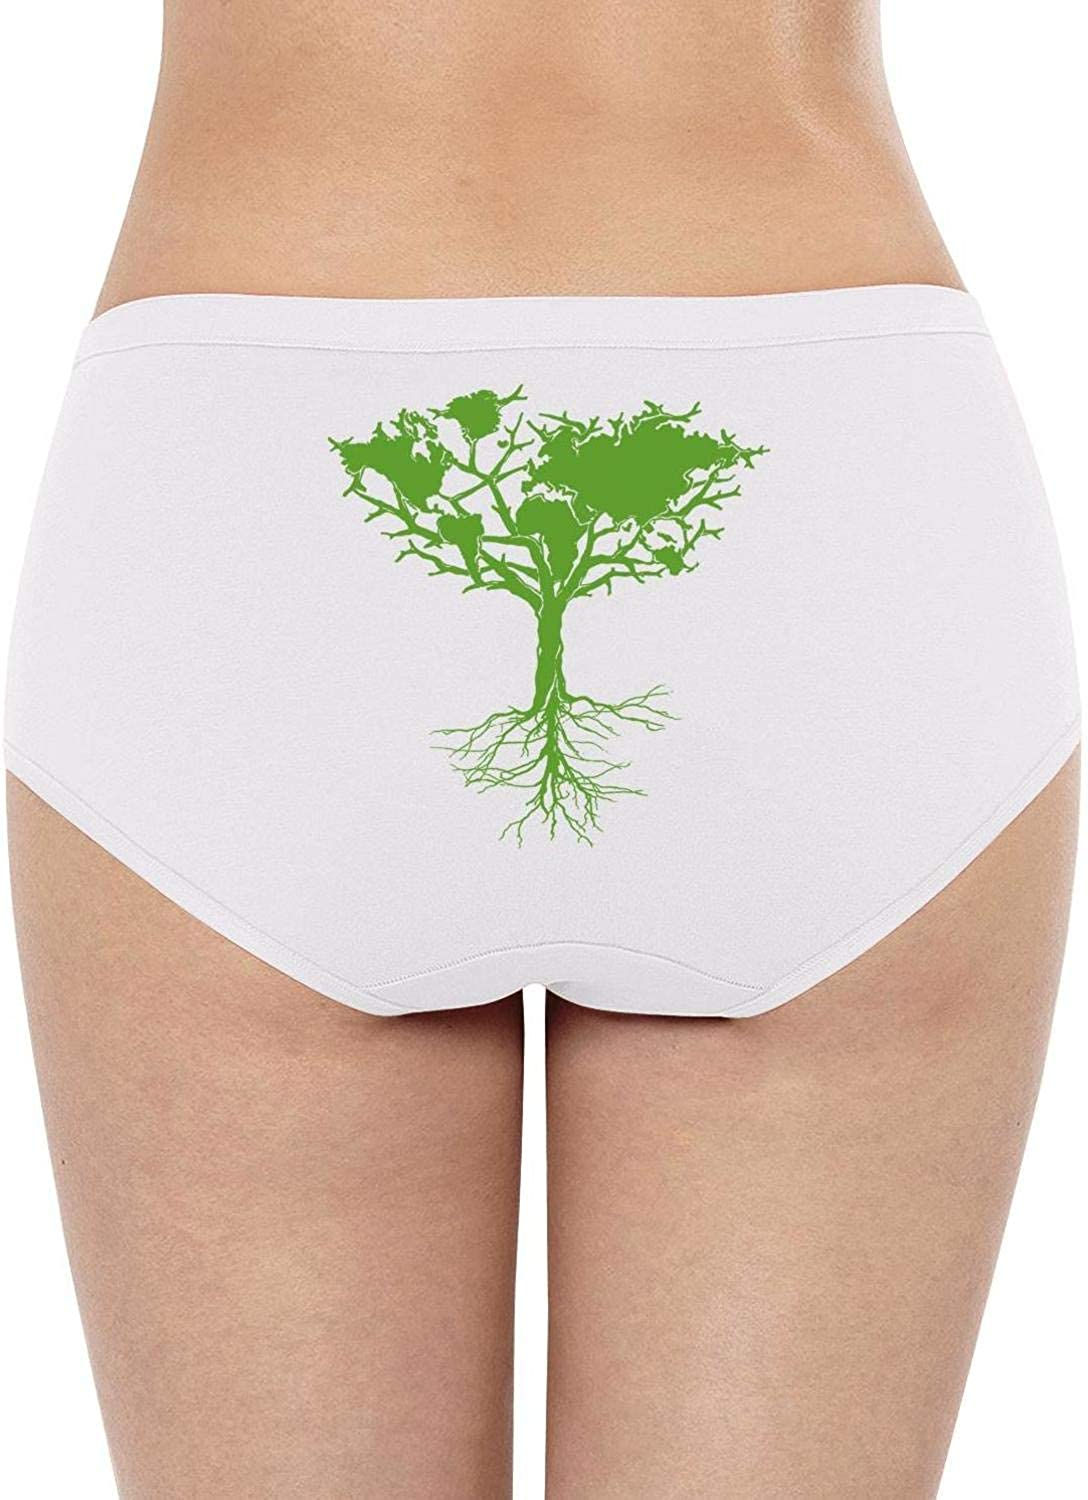 Hand Drawn Earth Day conceptWomensBikini PantySuper Soft Cotton Stretch Quick DryLow WaistBrief Panties